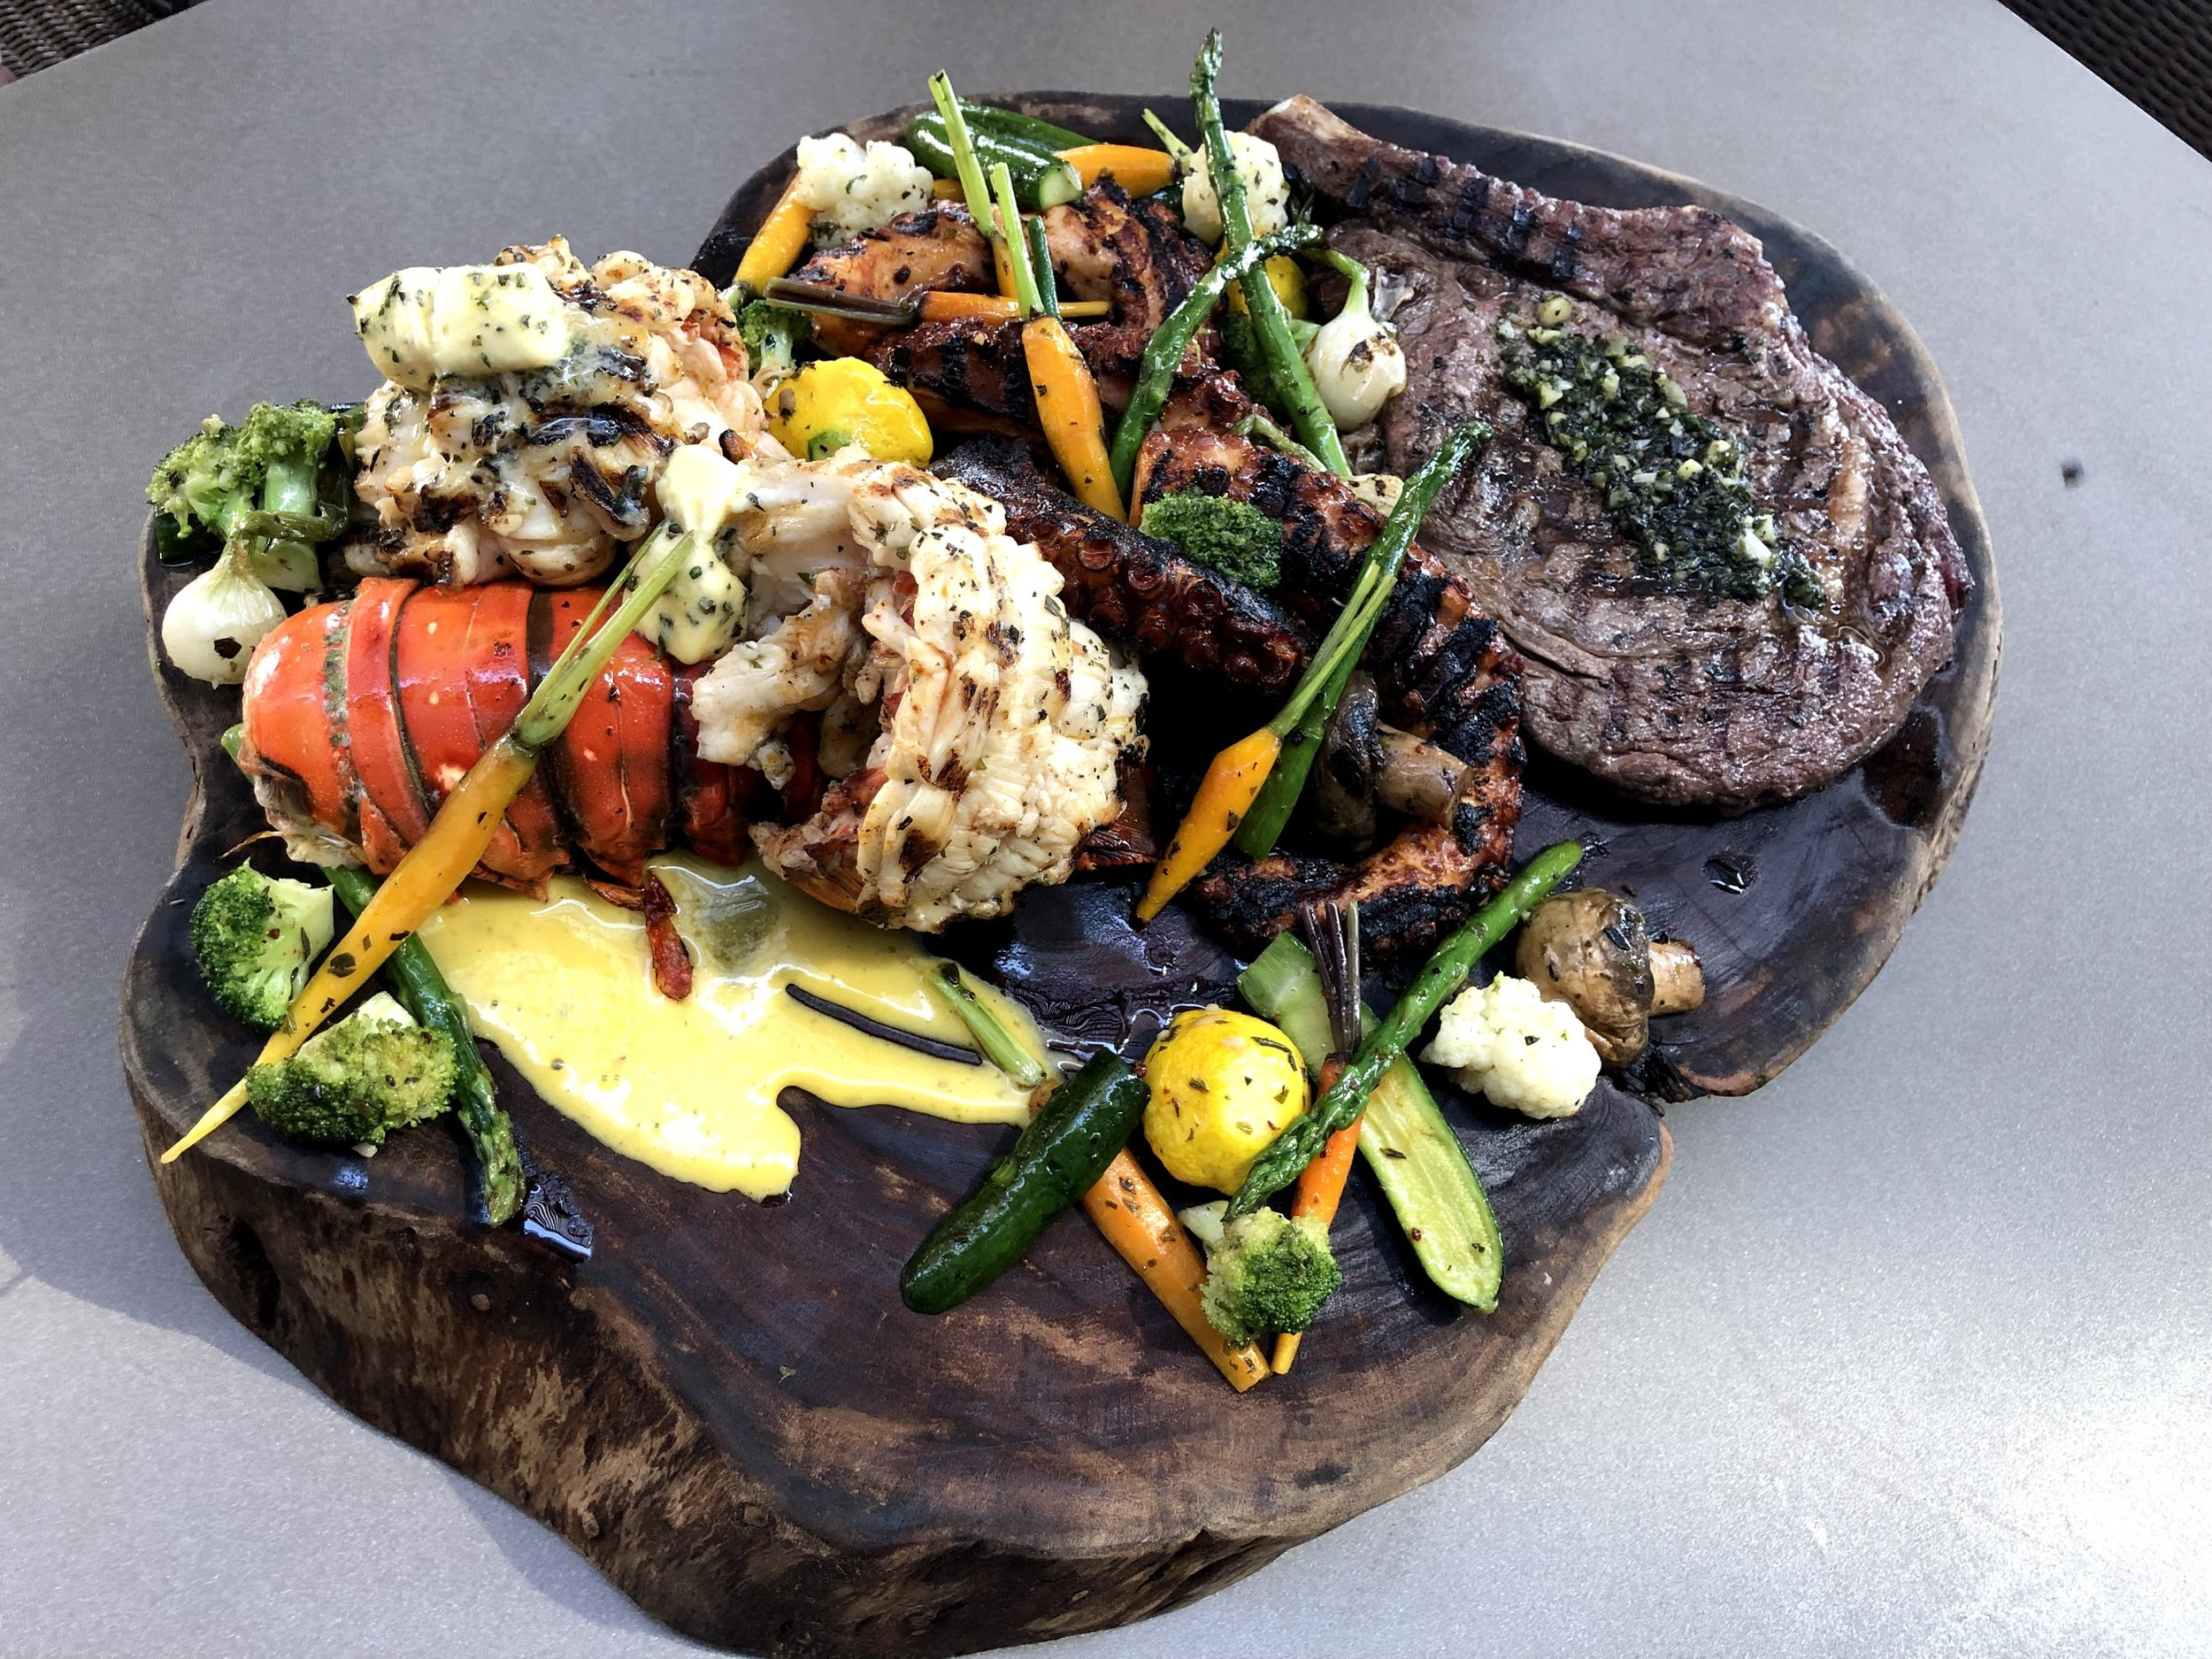 Grilled seafood @ Ua, Culinary Artisans, inside the JW Marriott Los Cabos